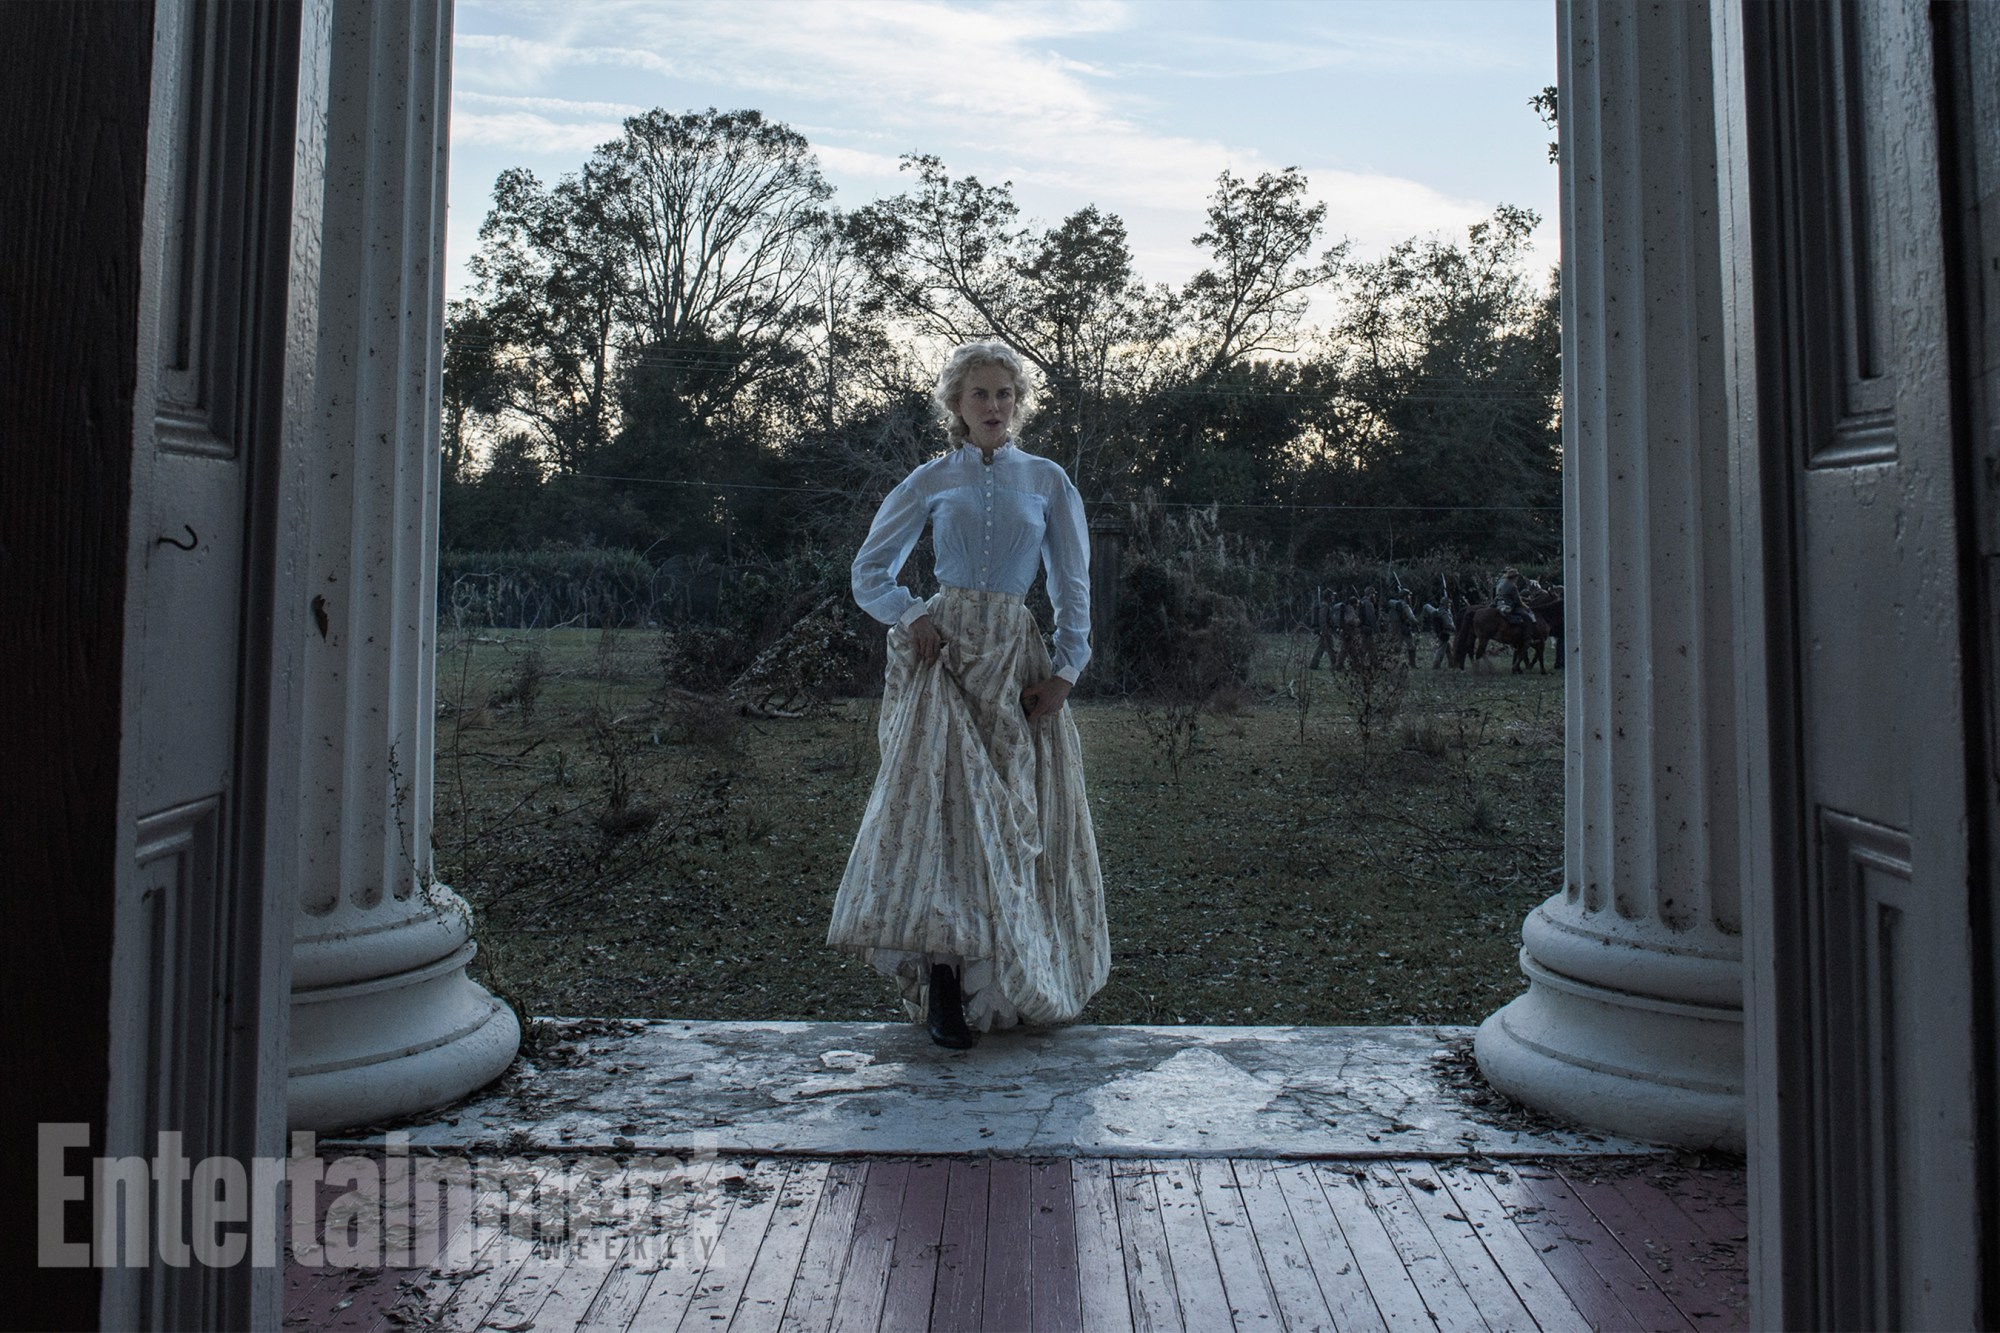 First Trailer For Sofia Coppola's The Beguiled Unveils A Period Drama With A Dark Twist